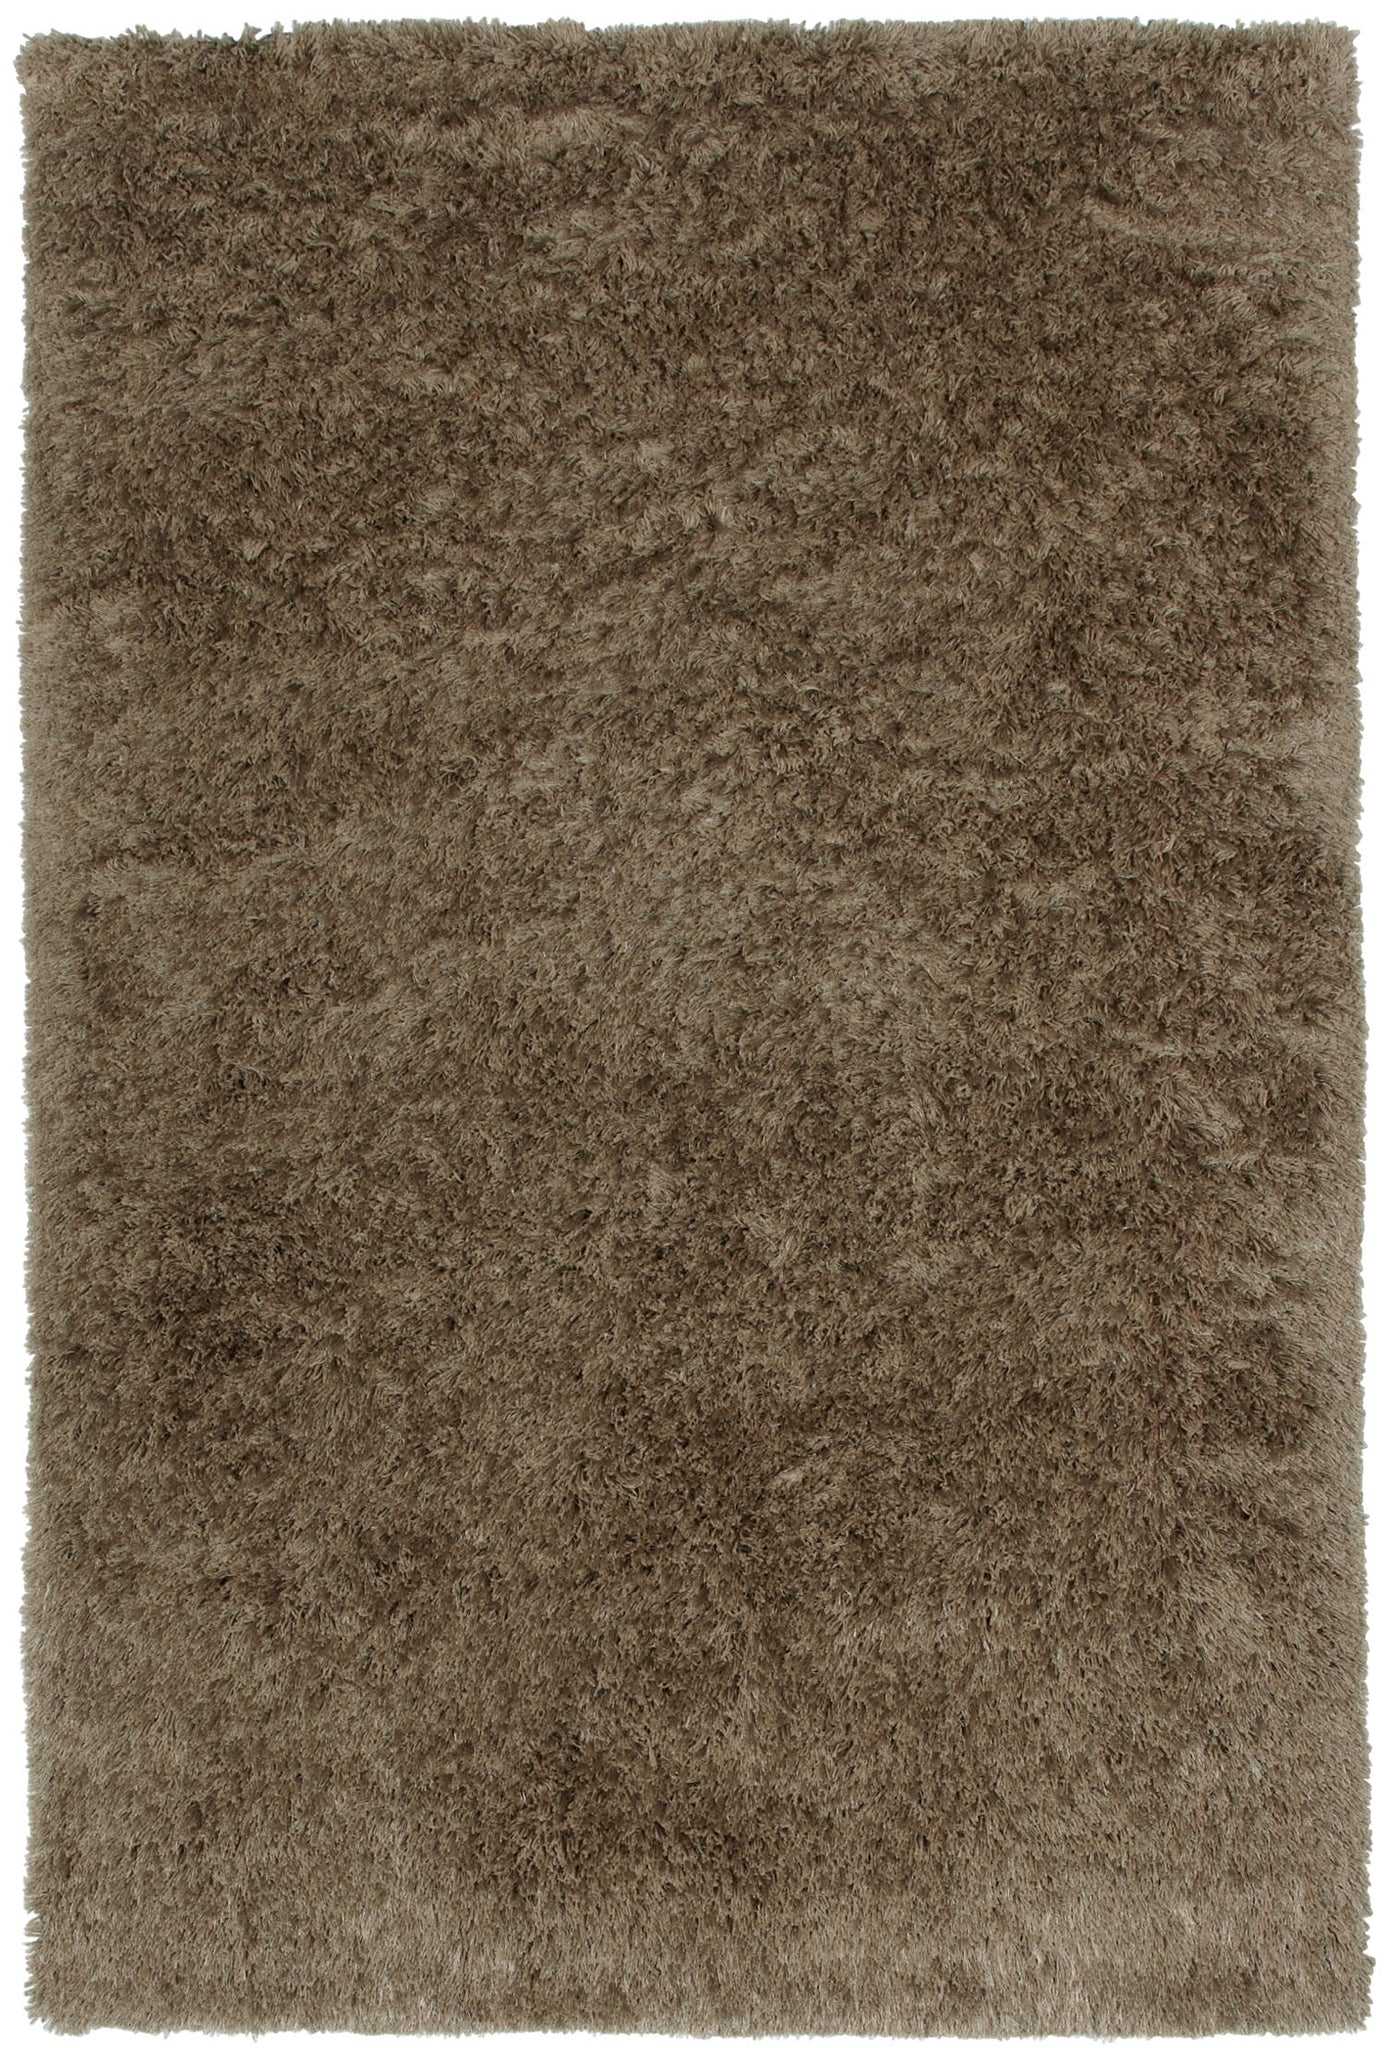 Capel Trolley Line 3250 Tan 700 Area Rug main image